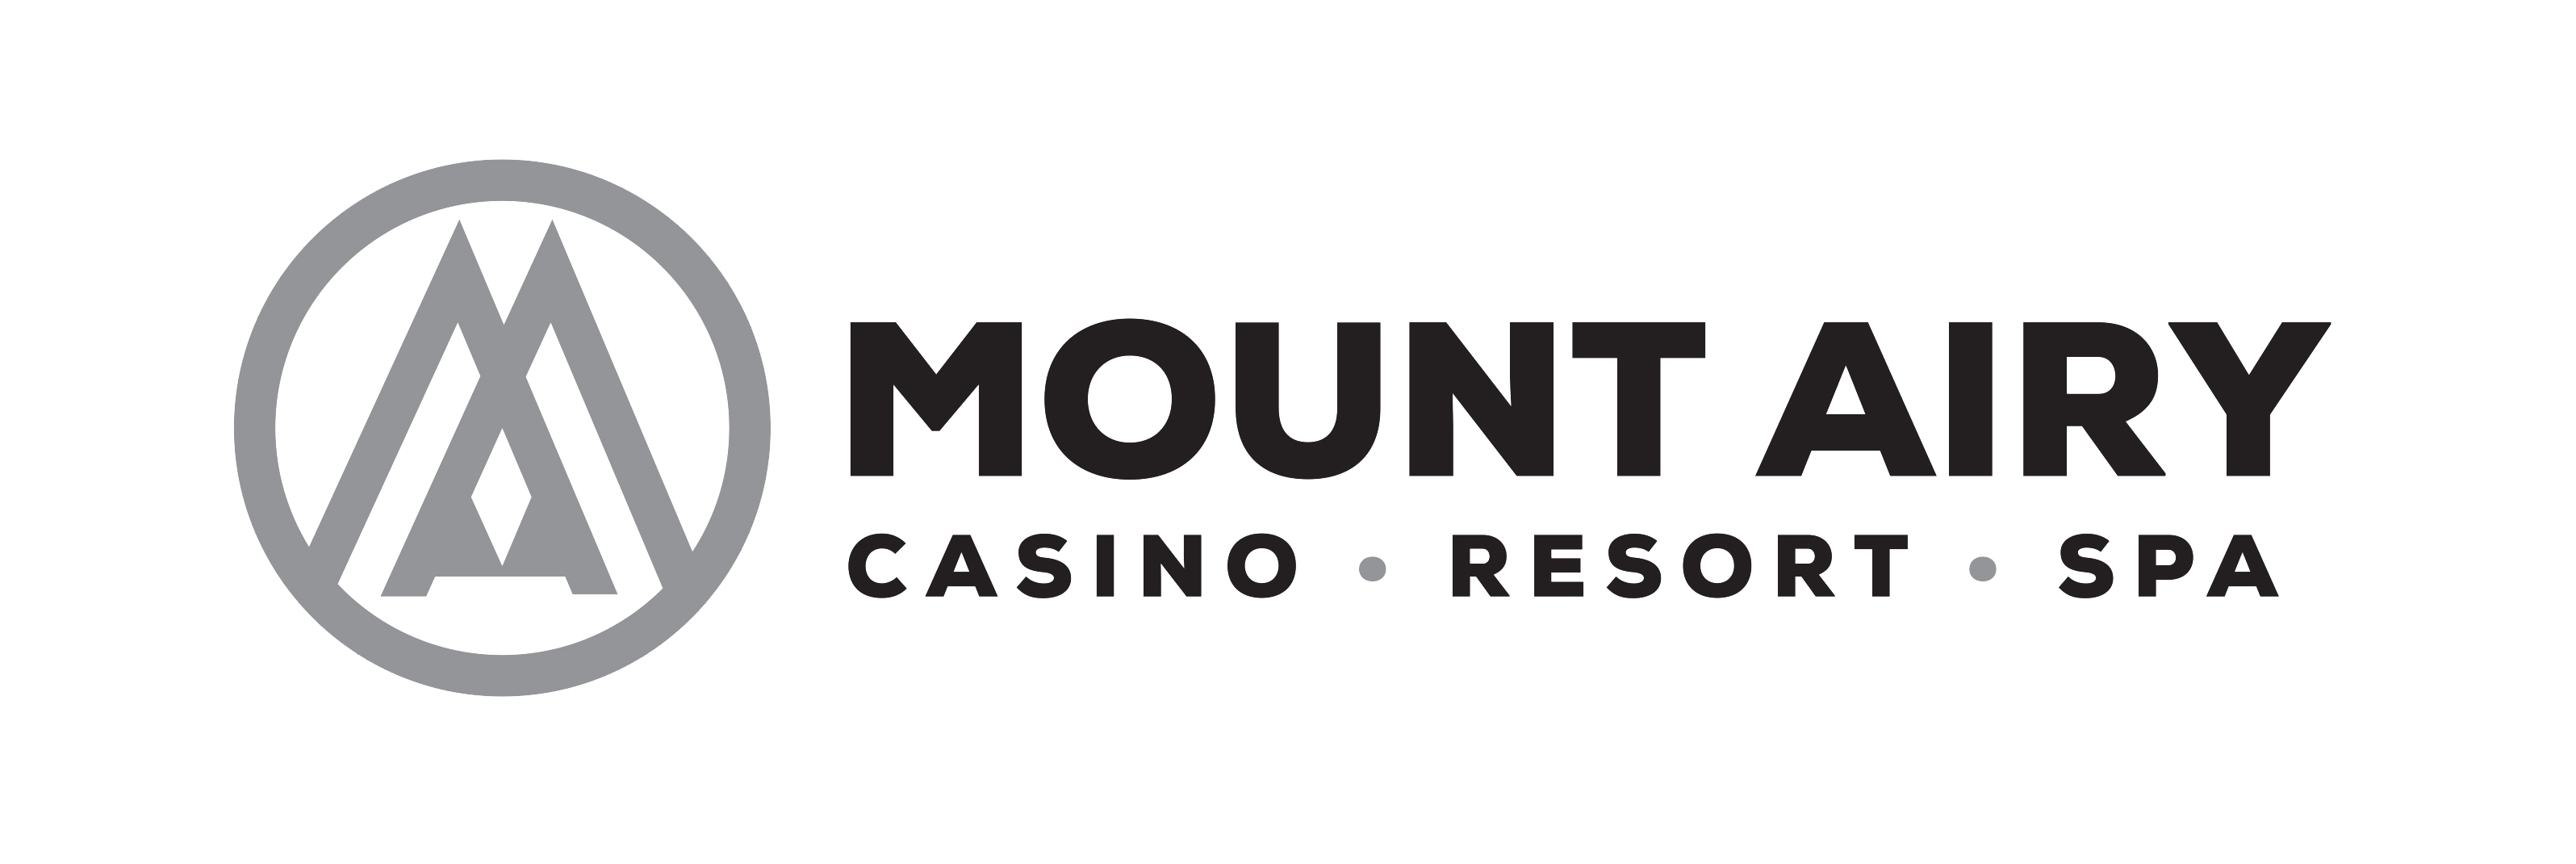 Image result for mount airy casino resort spa logo